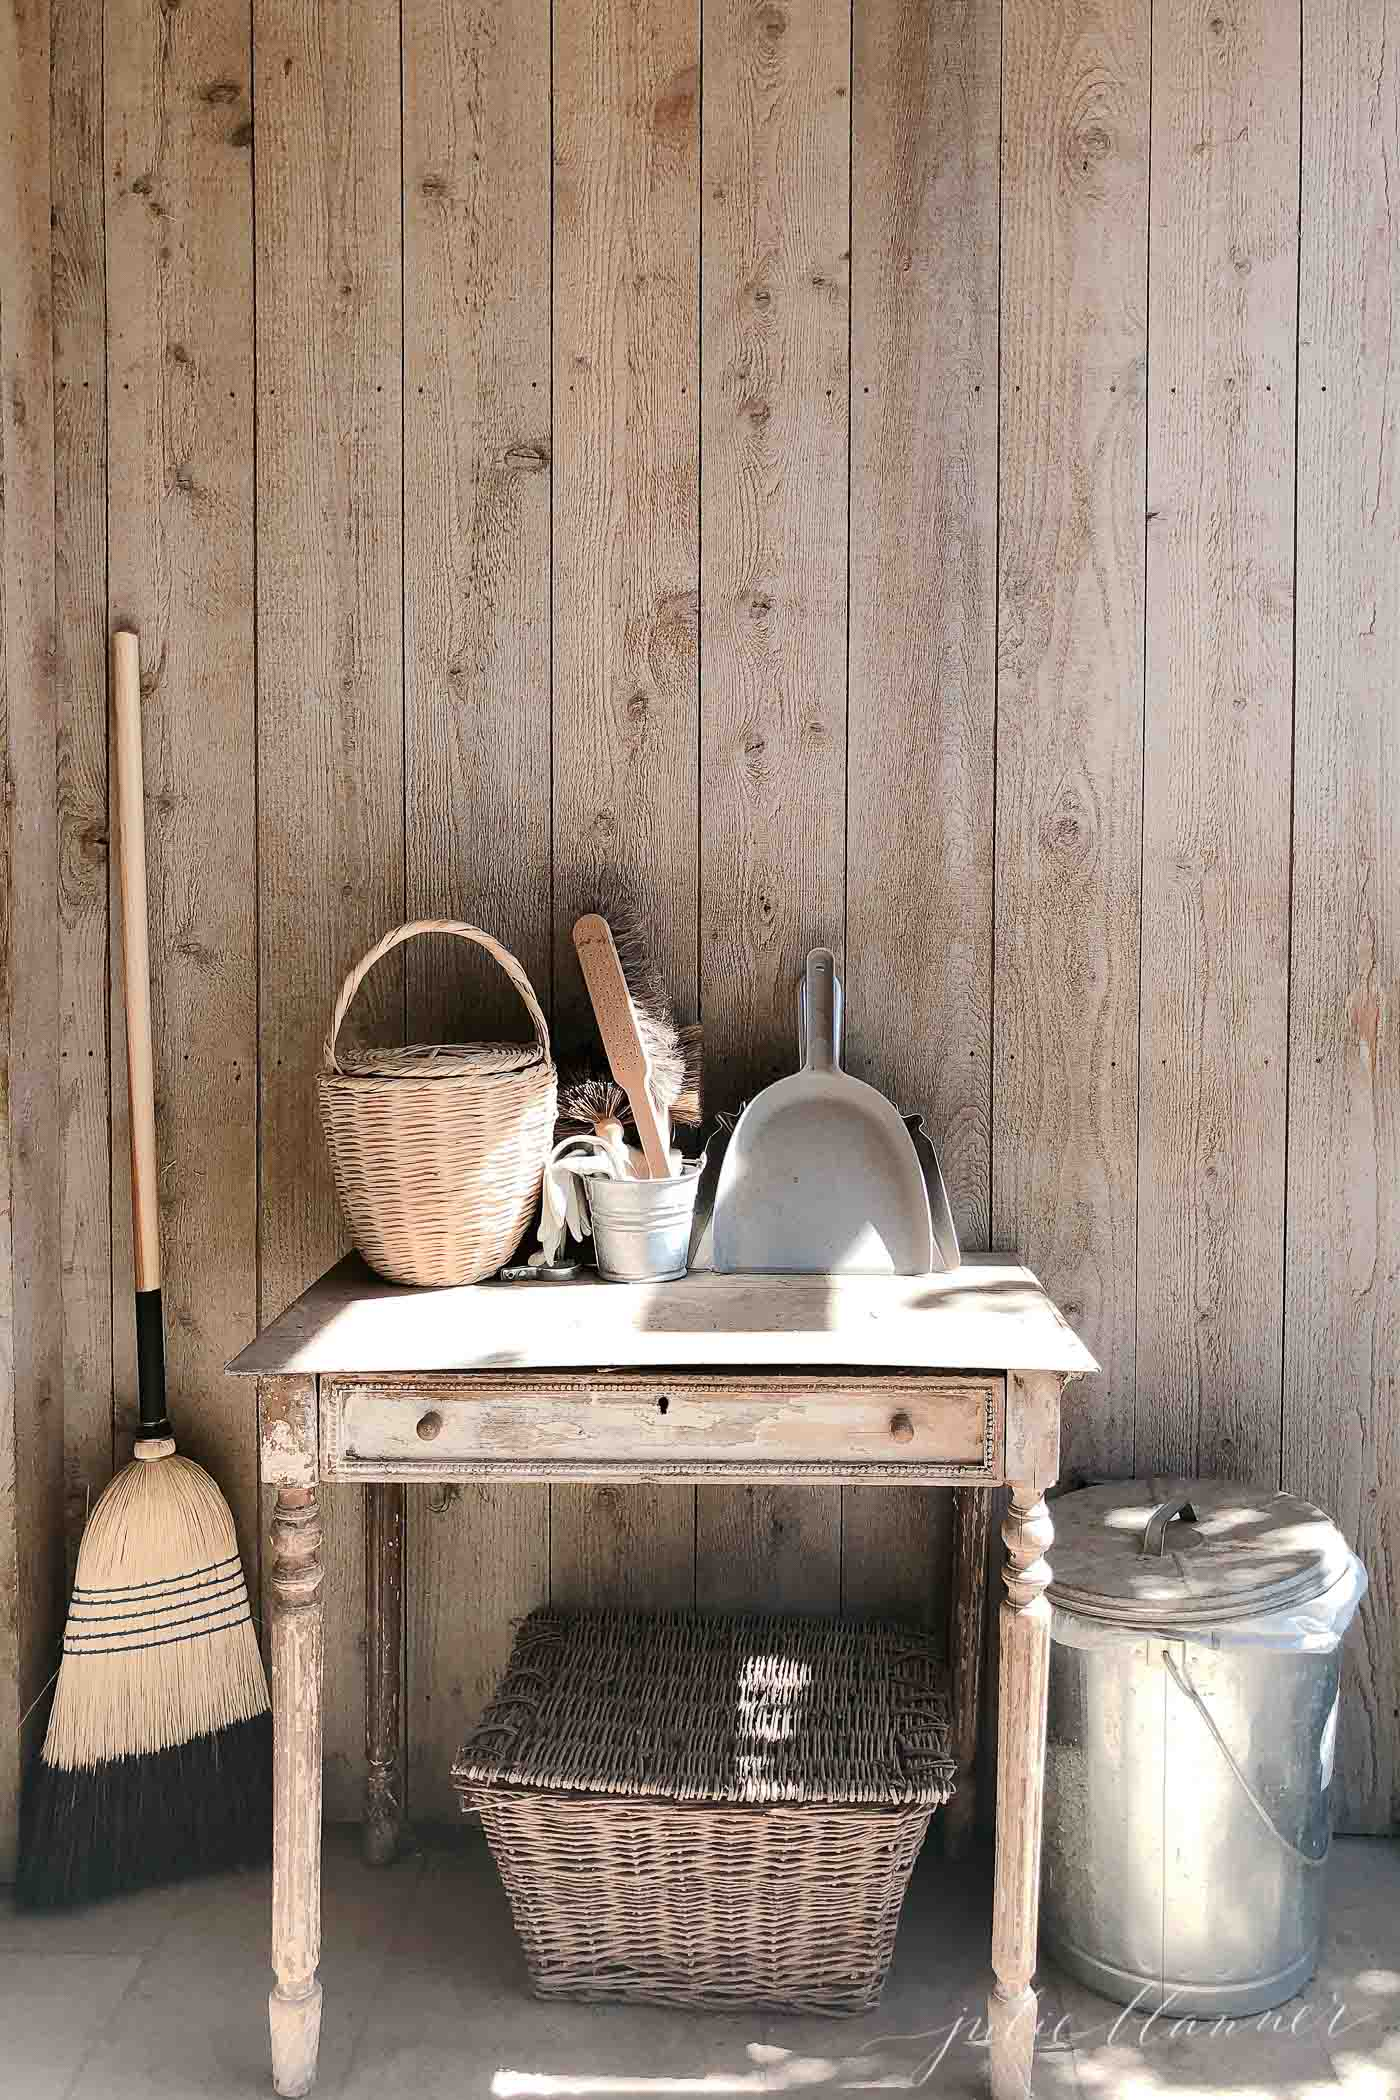 A raw wood wall with a simple wood table, piled with rustic cleaning supplies.